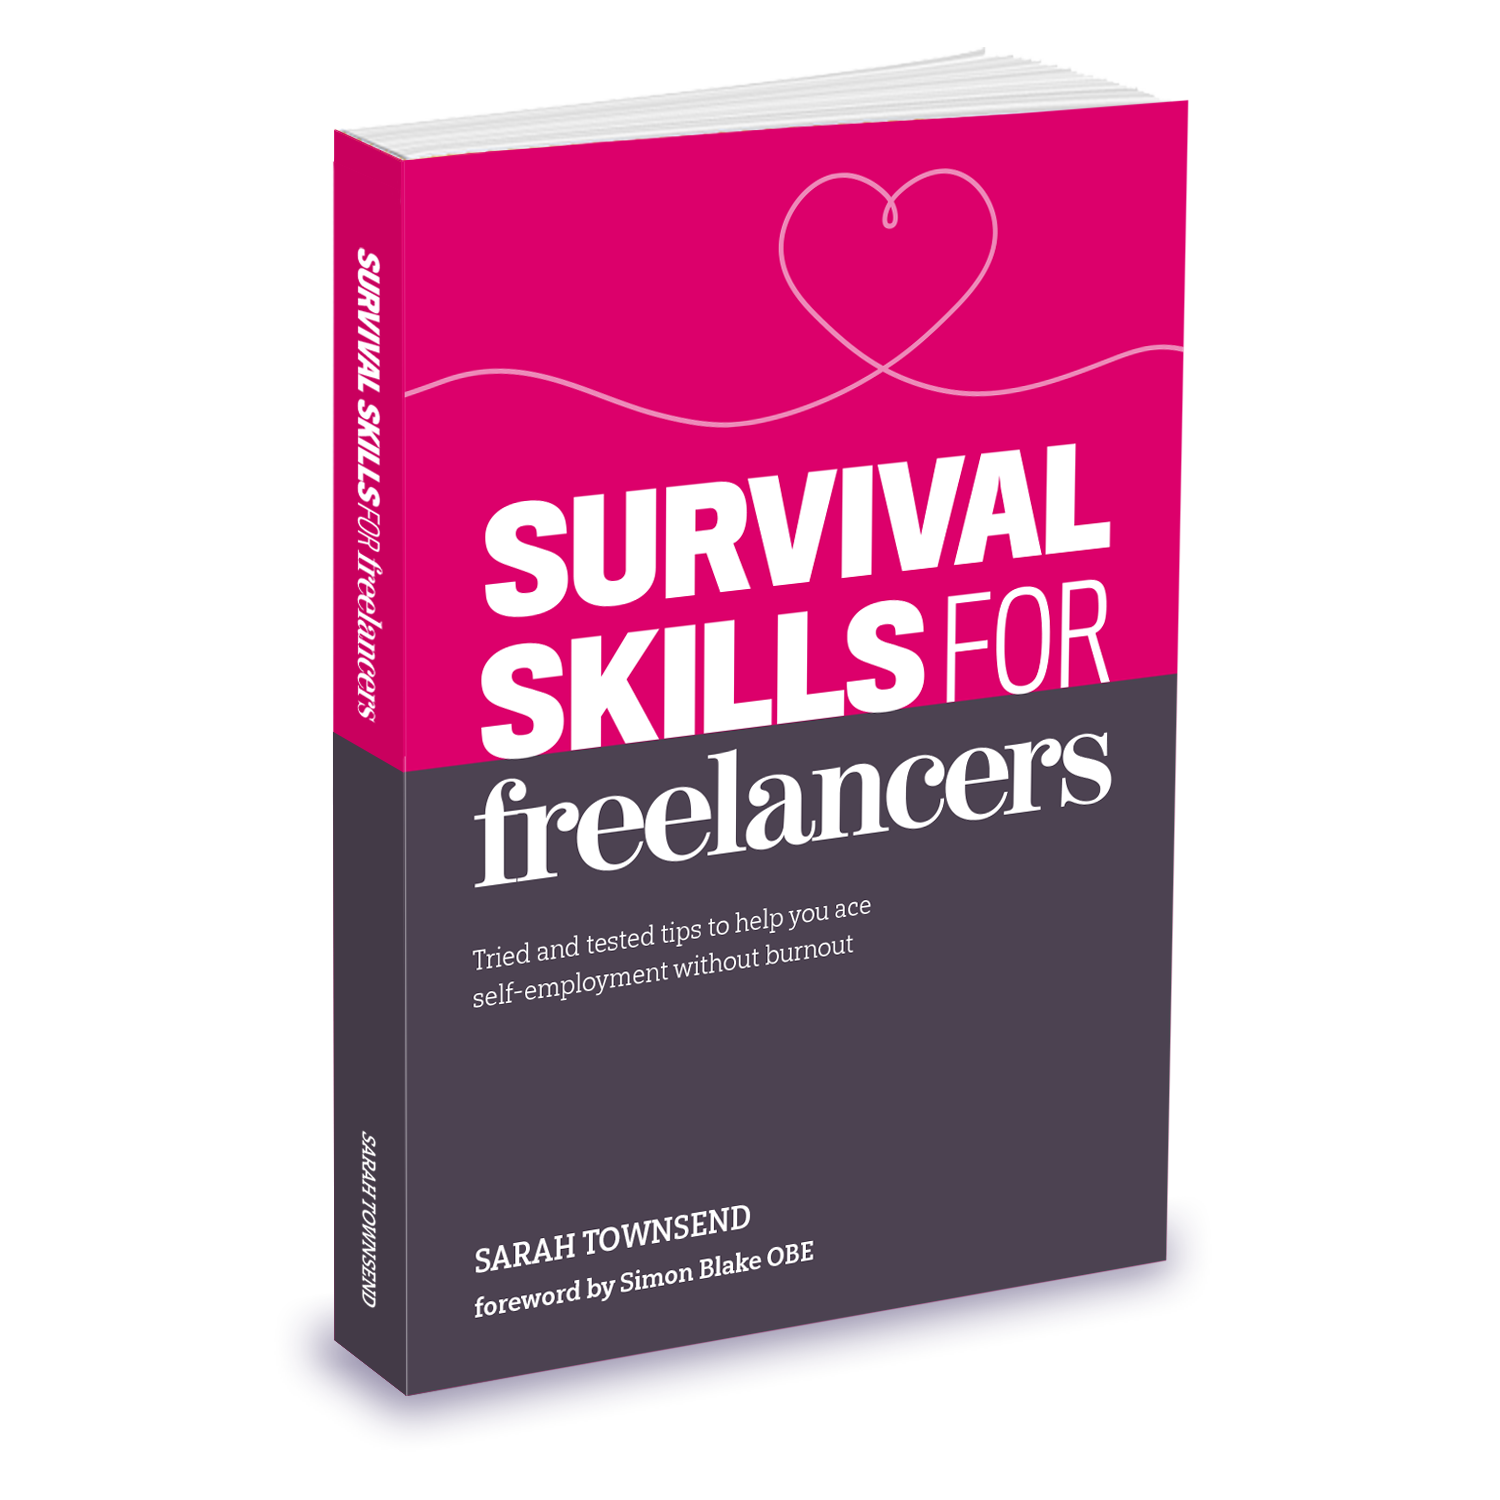 Survival Skills for Freelancers